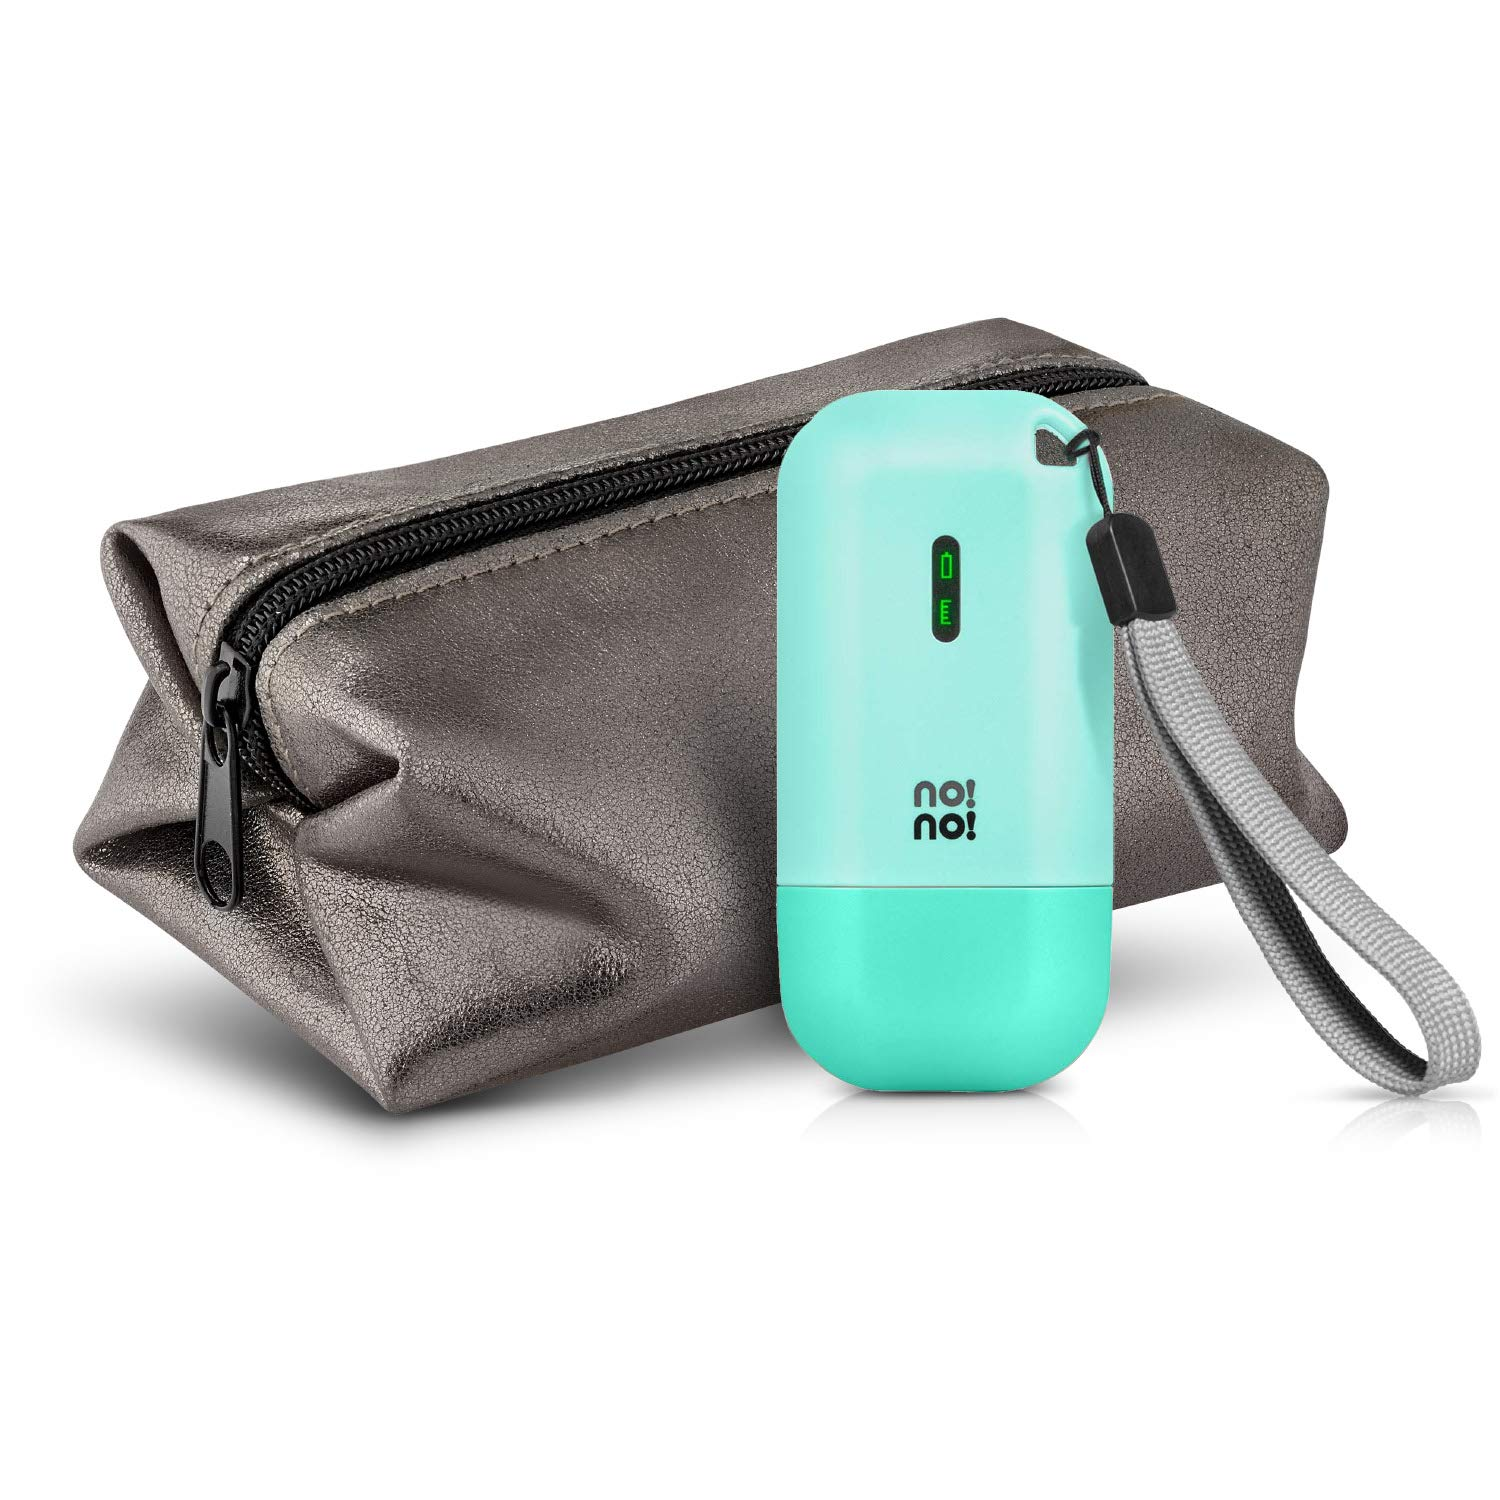 no Micro Hair Removal System Lip Face Upper for Sideburns Free Shipping New Super intense SALE